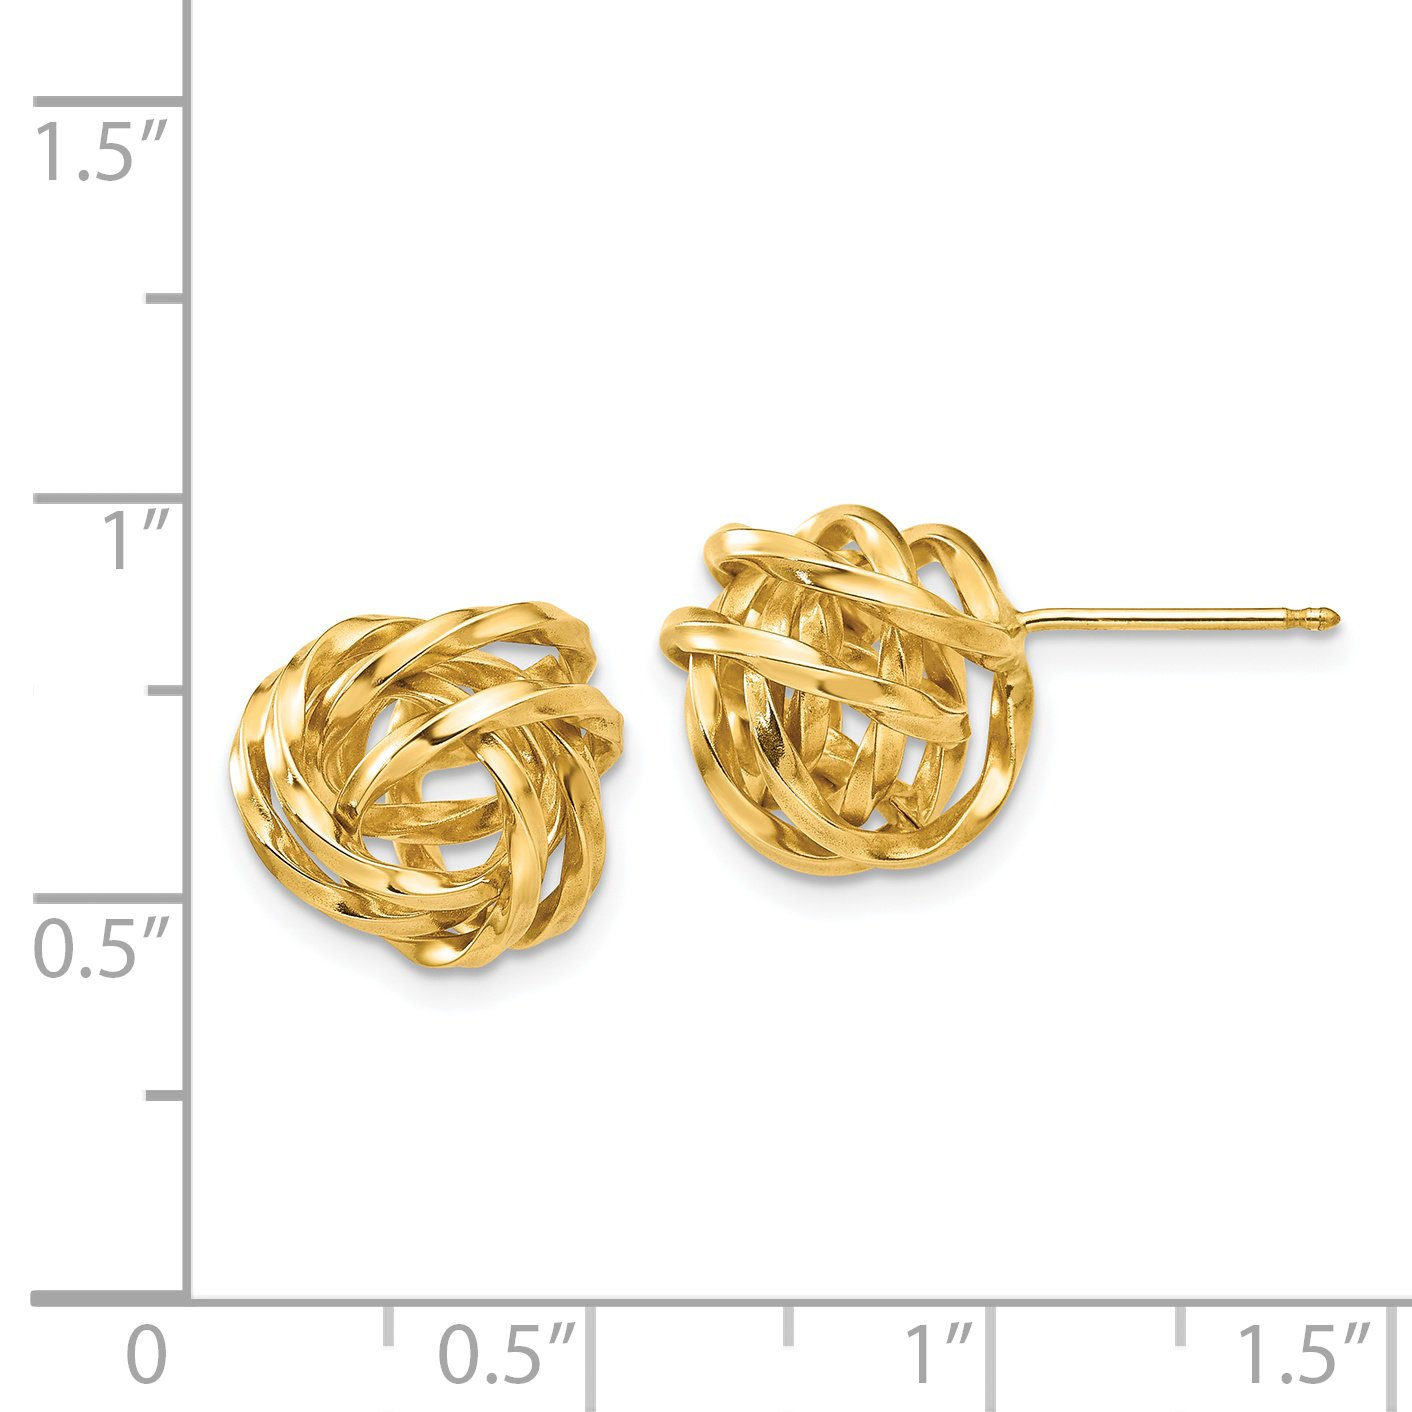 14k Yellow Gold Polished Love Knot Post Earrings (0.4IN x 0.4IN ) by Jewelry Pot (Image #2)